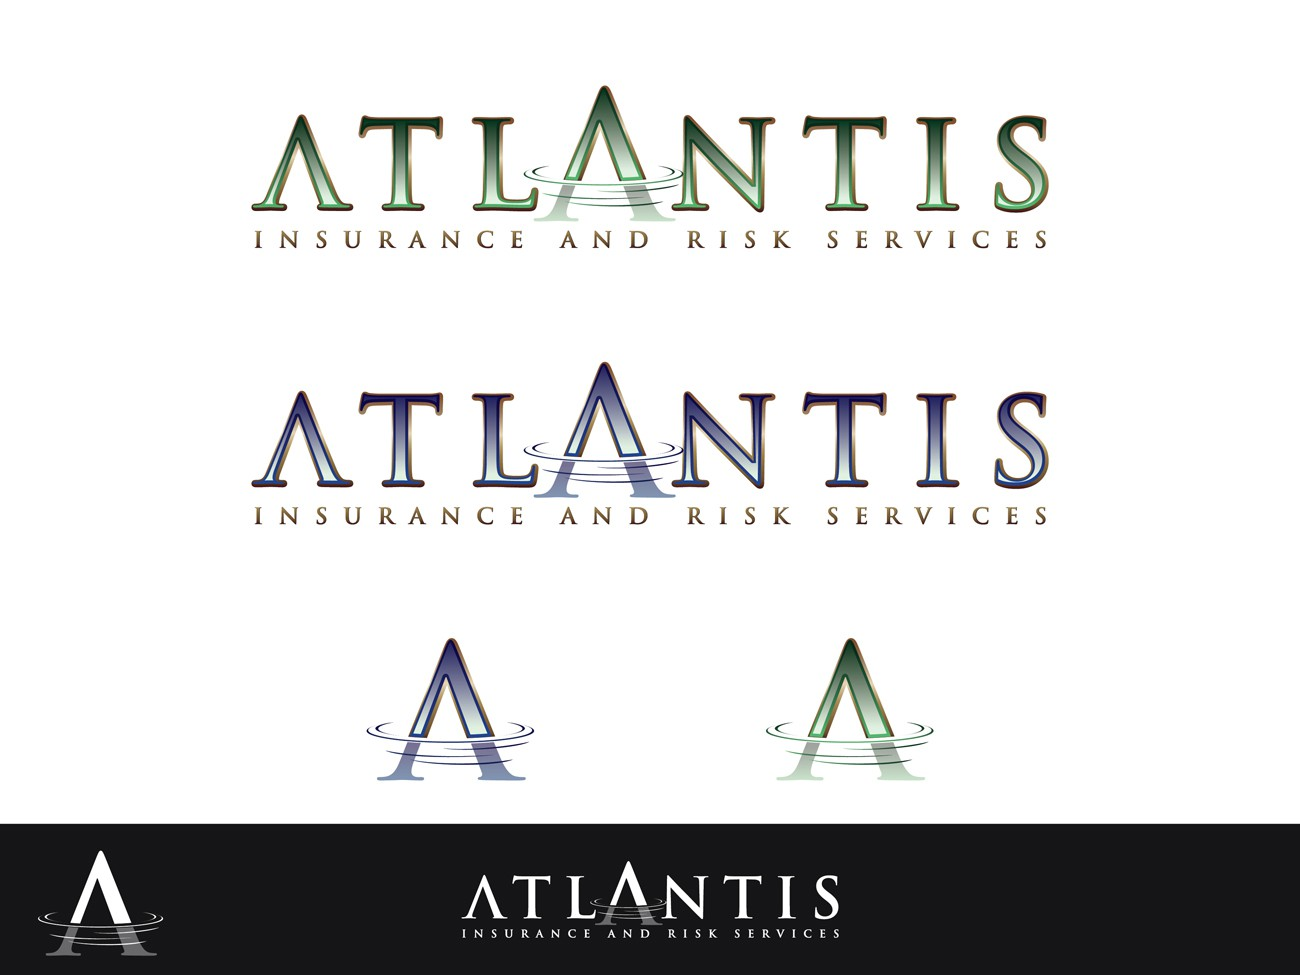 logo for Atlantis Insurance and Risk Services